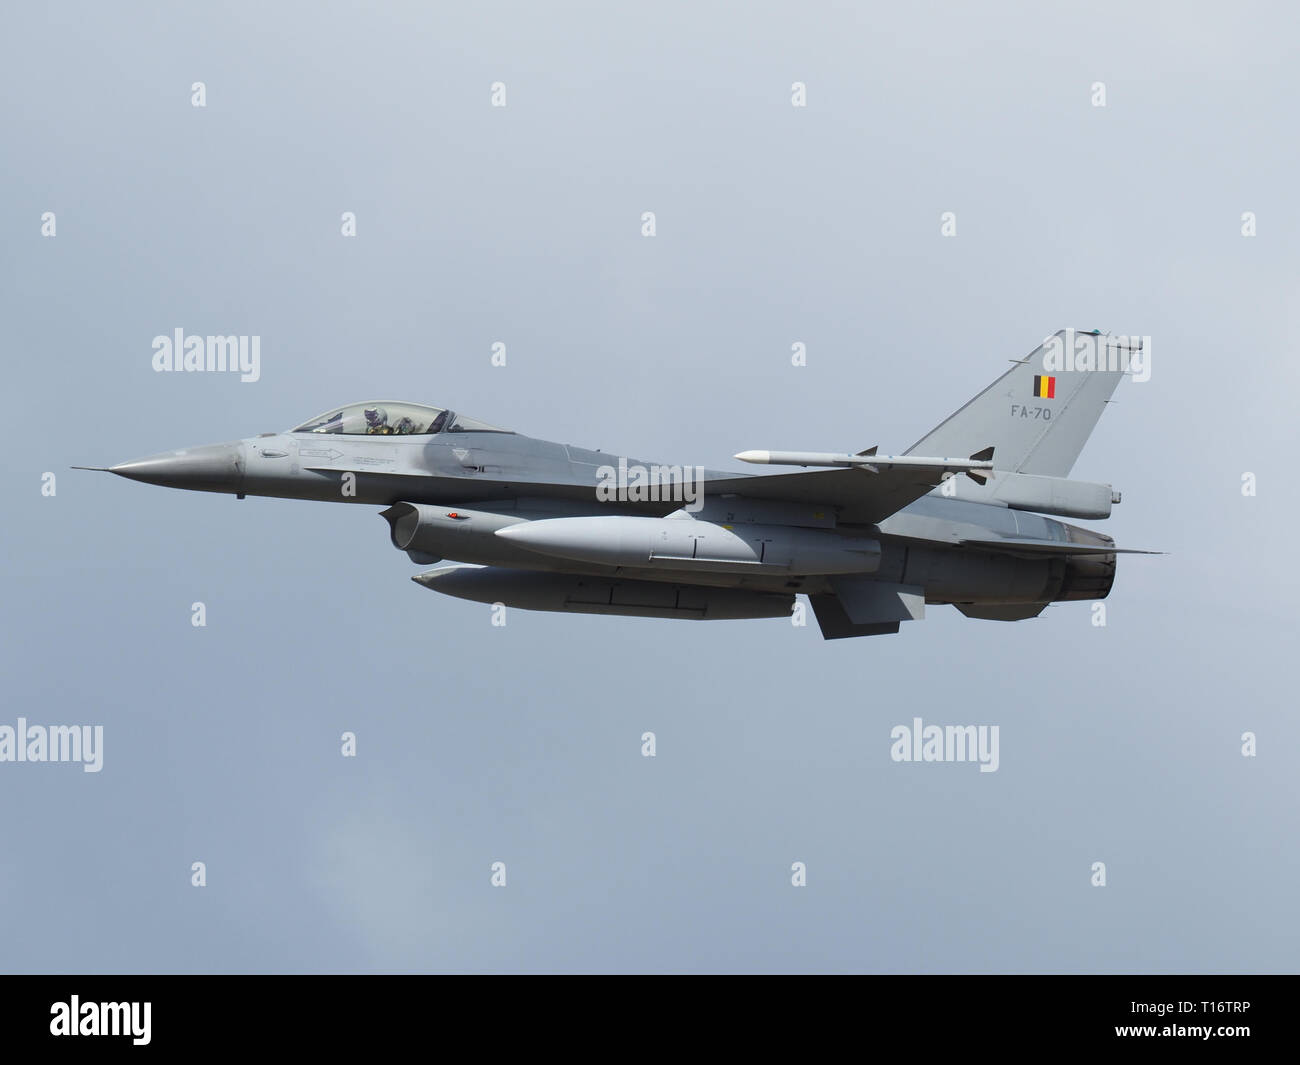 Kleine-Brogel, Belgium - September 8, 2018: F-16 of the Belgian Air Force during an airshow. Stock Photo